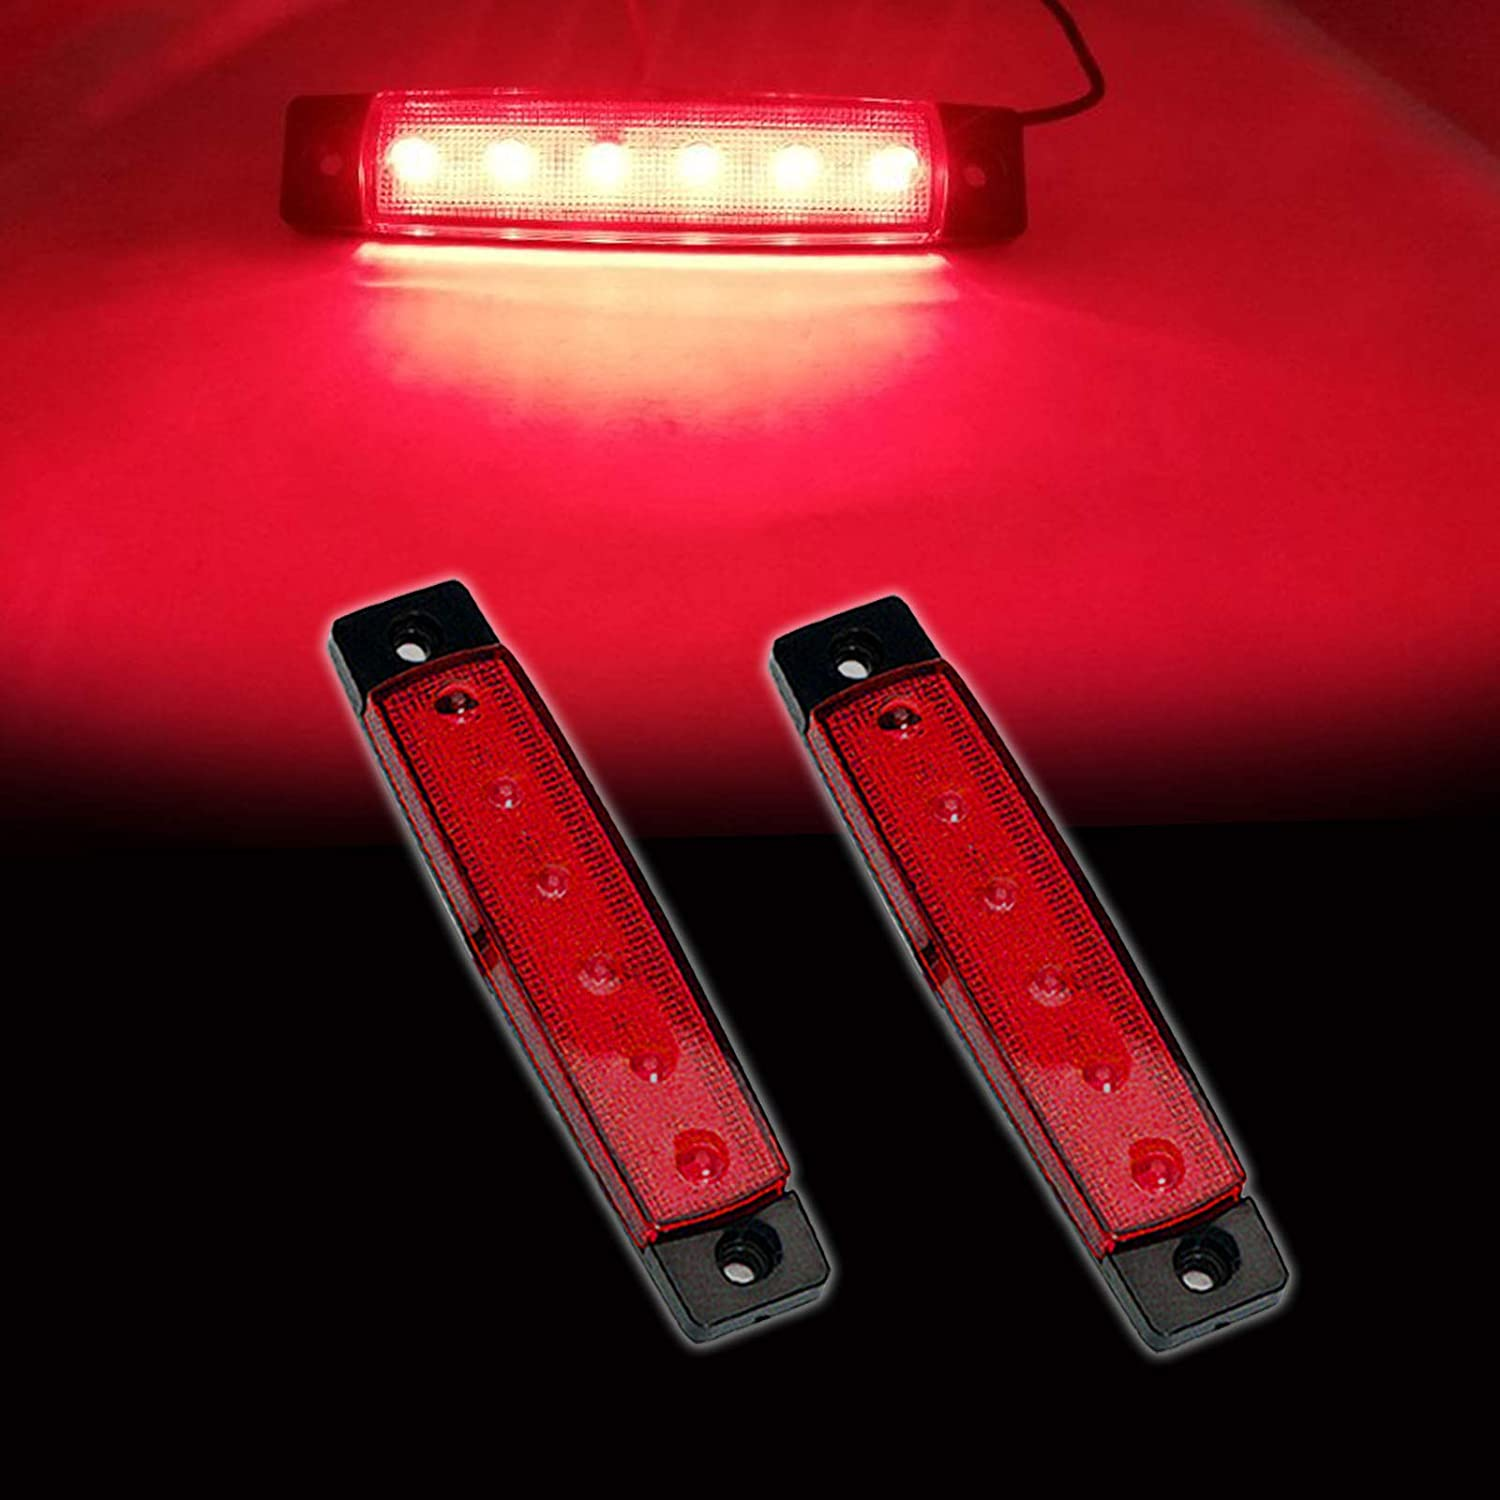 NBWDY 2PCS Marine Led Utility Strip Lights,Pontoon Boat Kayak Led Lights,Led Boat Lights Waterproof Night Fishing for Inflatable Rafts, 12v Boat Deck Light Strips (Red)